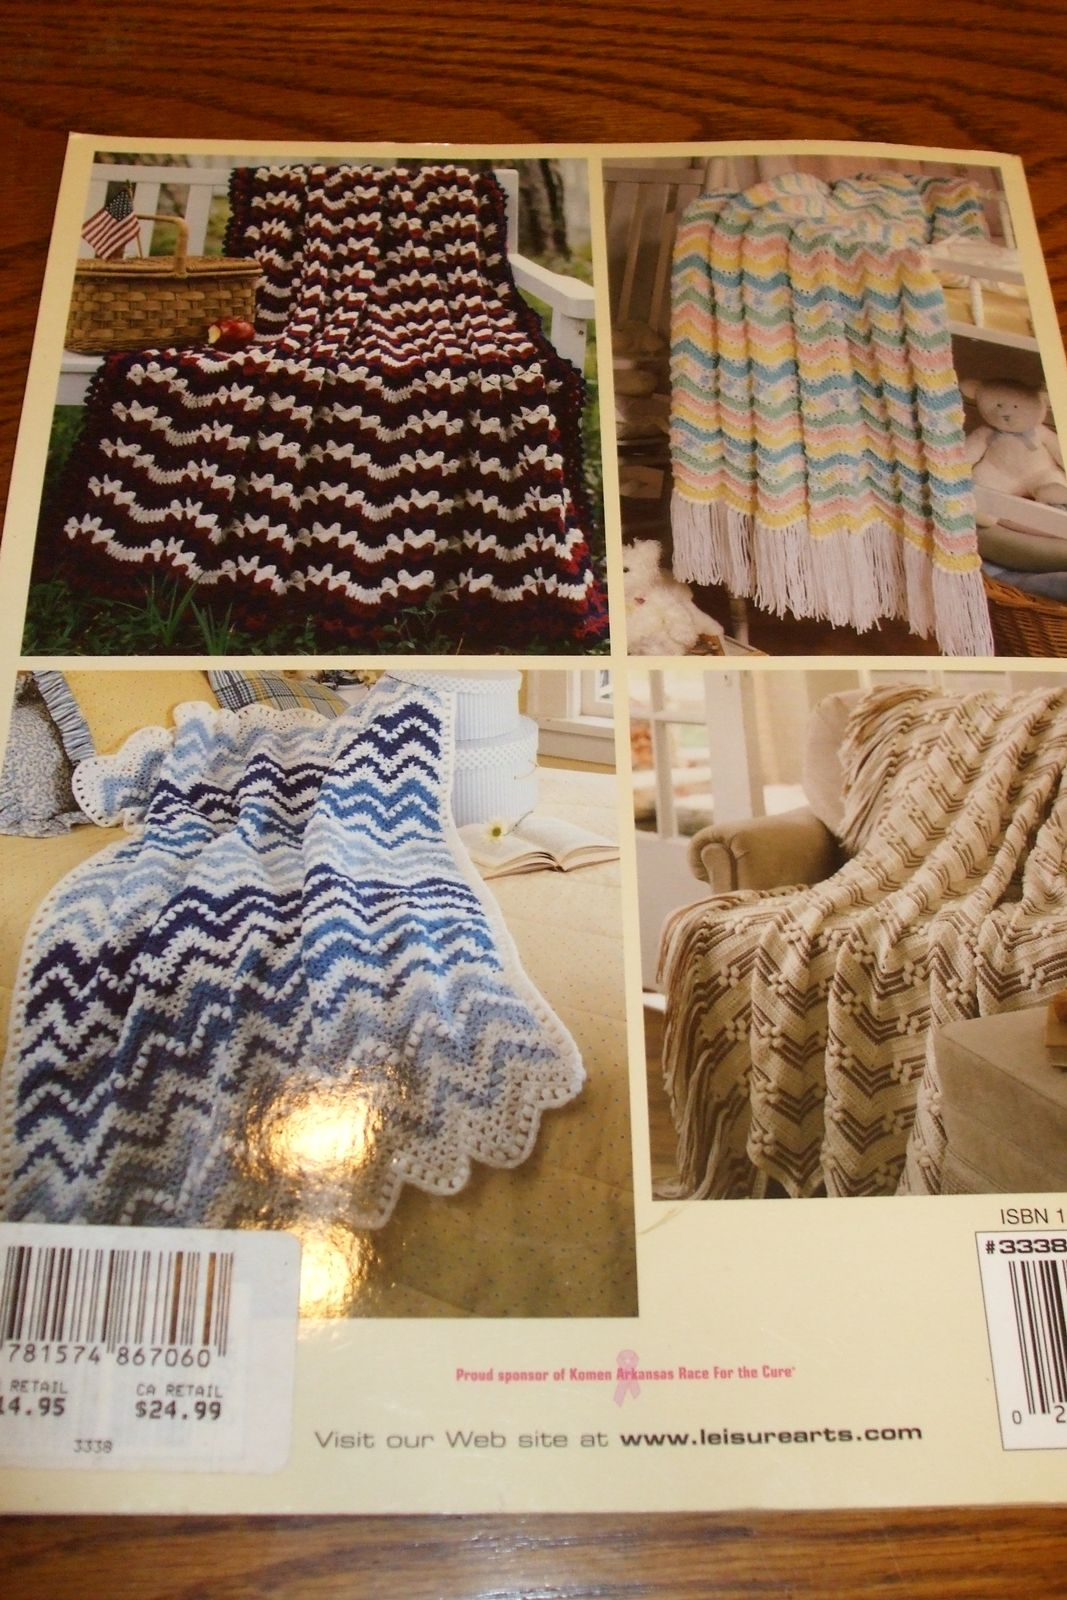 Second silver favorite ripple afghans 40 crochet patterns second silver favorite ripple afghans 40 crochet patterns leisure arts crochet with heart magazine bankloansurffo Choice Image